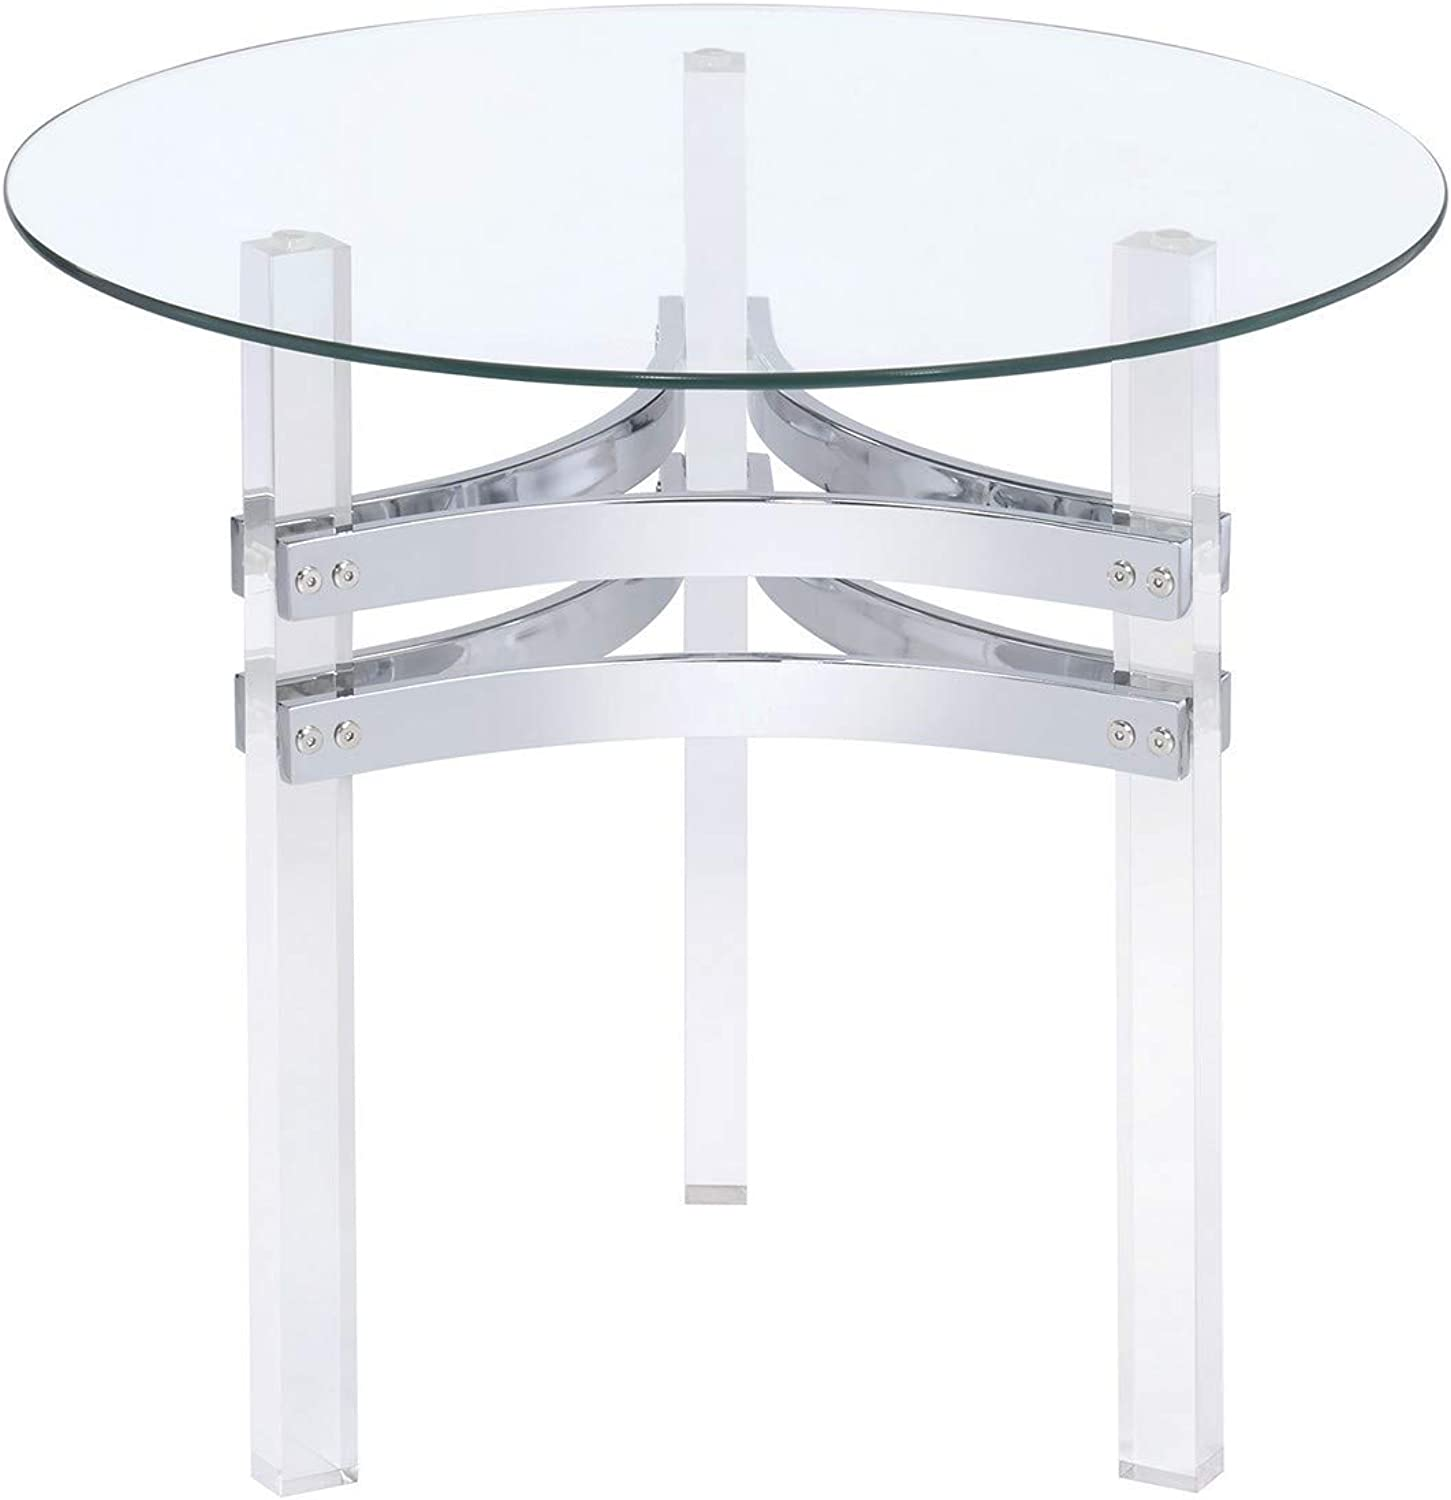 Coaster 720707-CO Round Glass Top End Table, Chrome